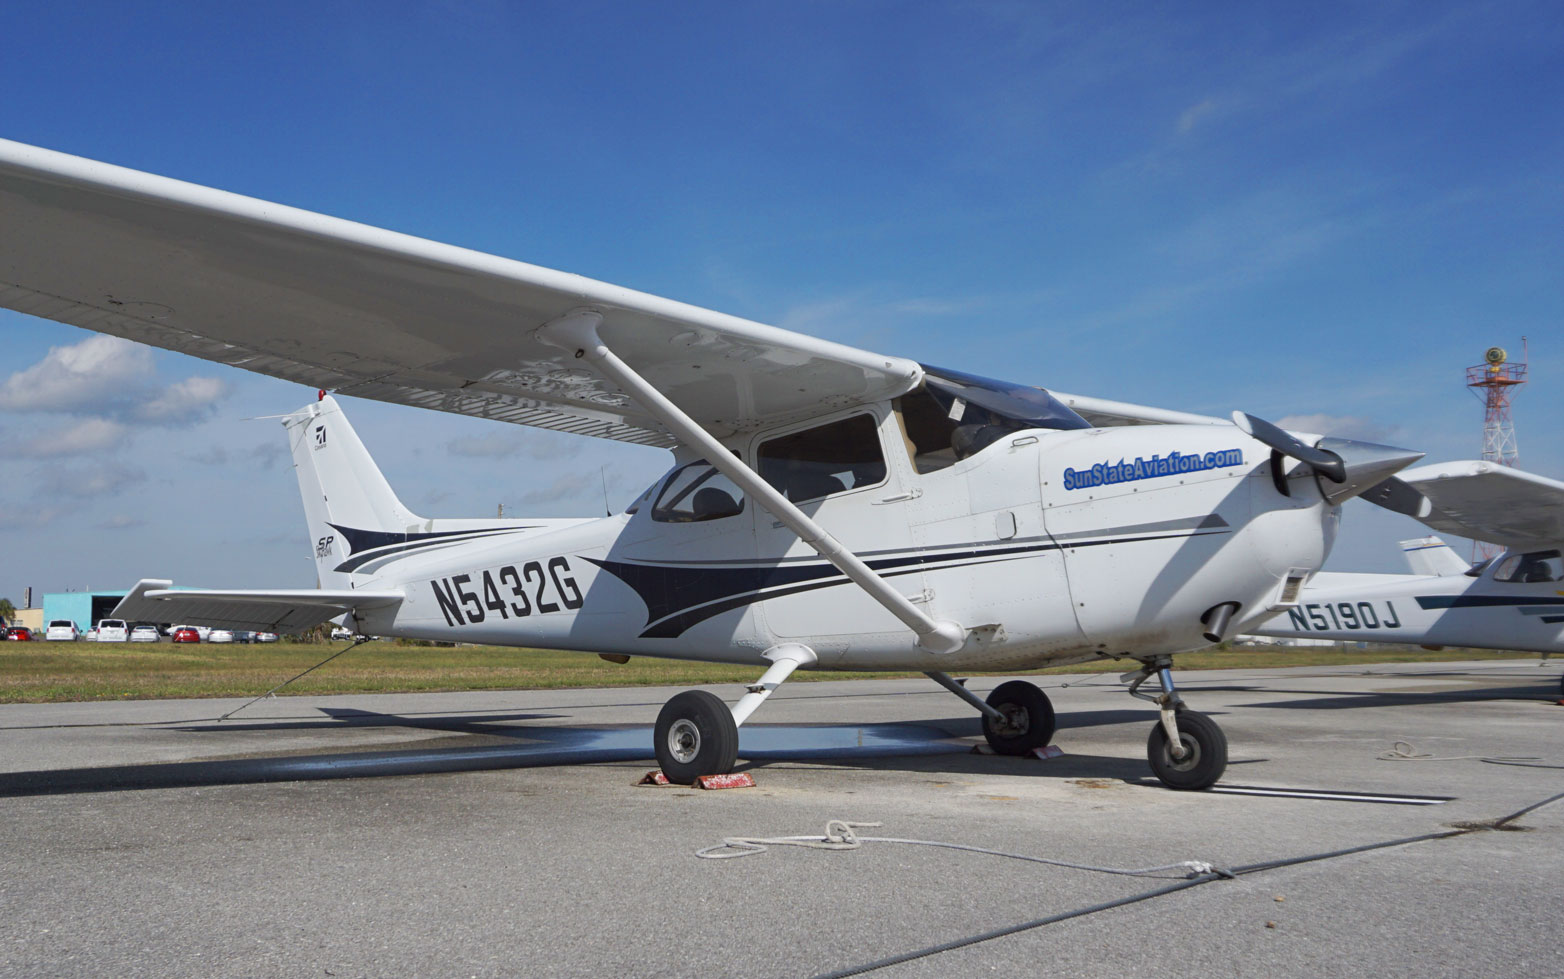 Cessna Plane Aircraft Rental And Instruction Rates Sunstate Aviation